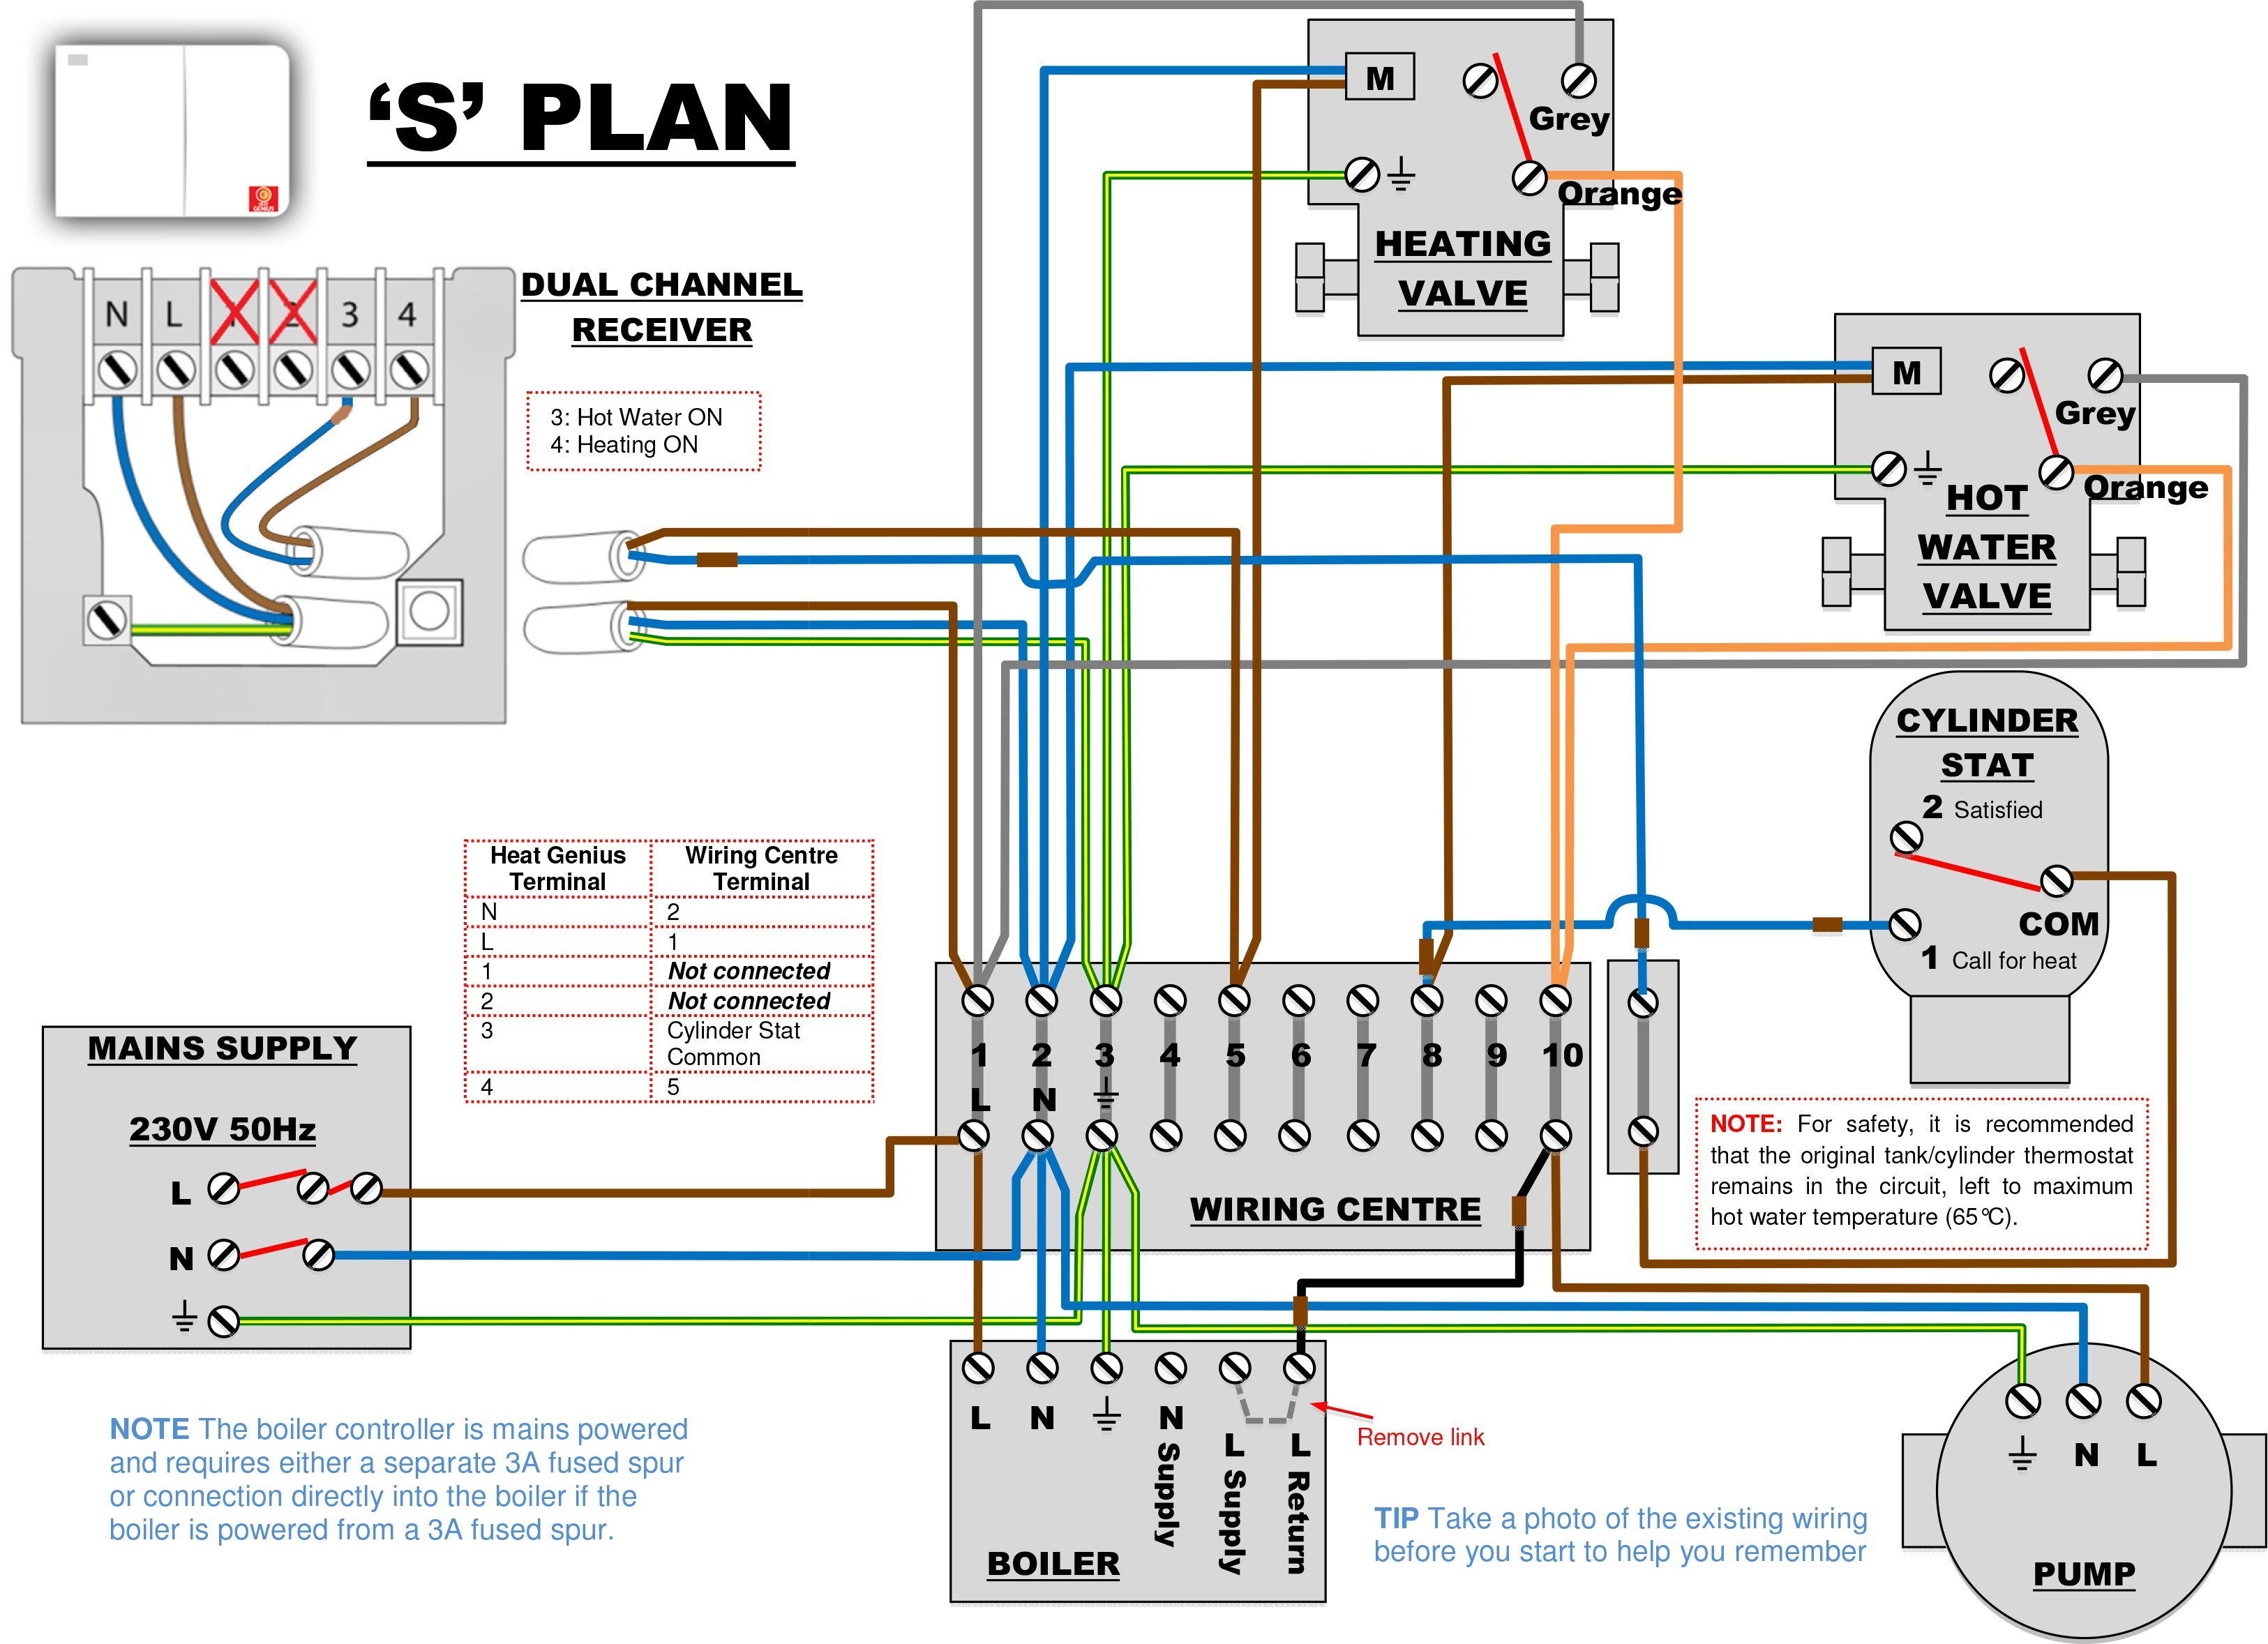 Nest Heat Pump Wiring Schematic | Wiring Diagram - Nest Thermostat 2Nd Generation Heat Pump Wiring Diagram